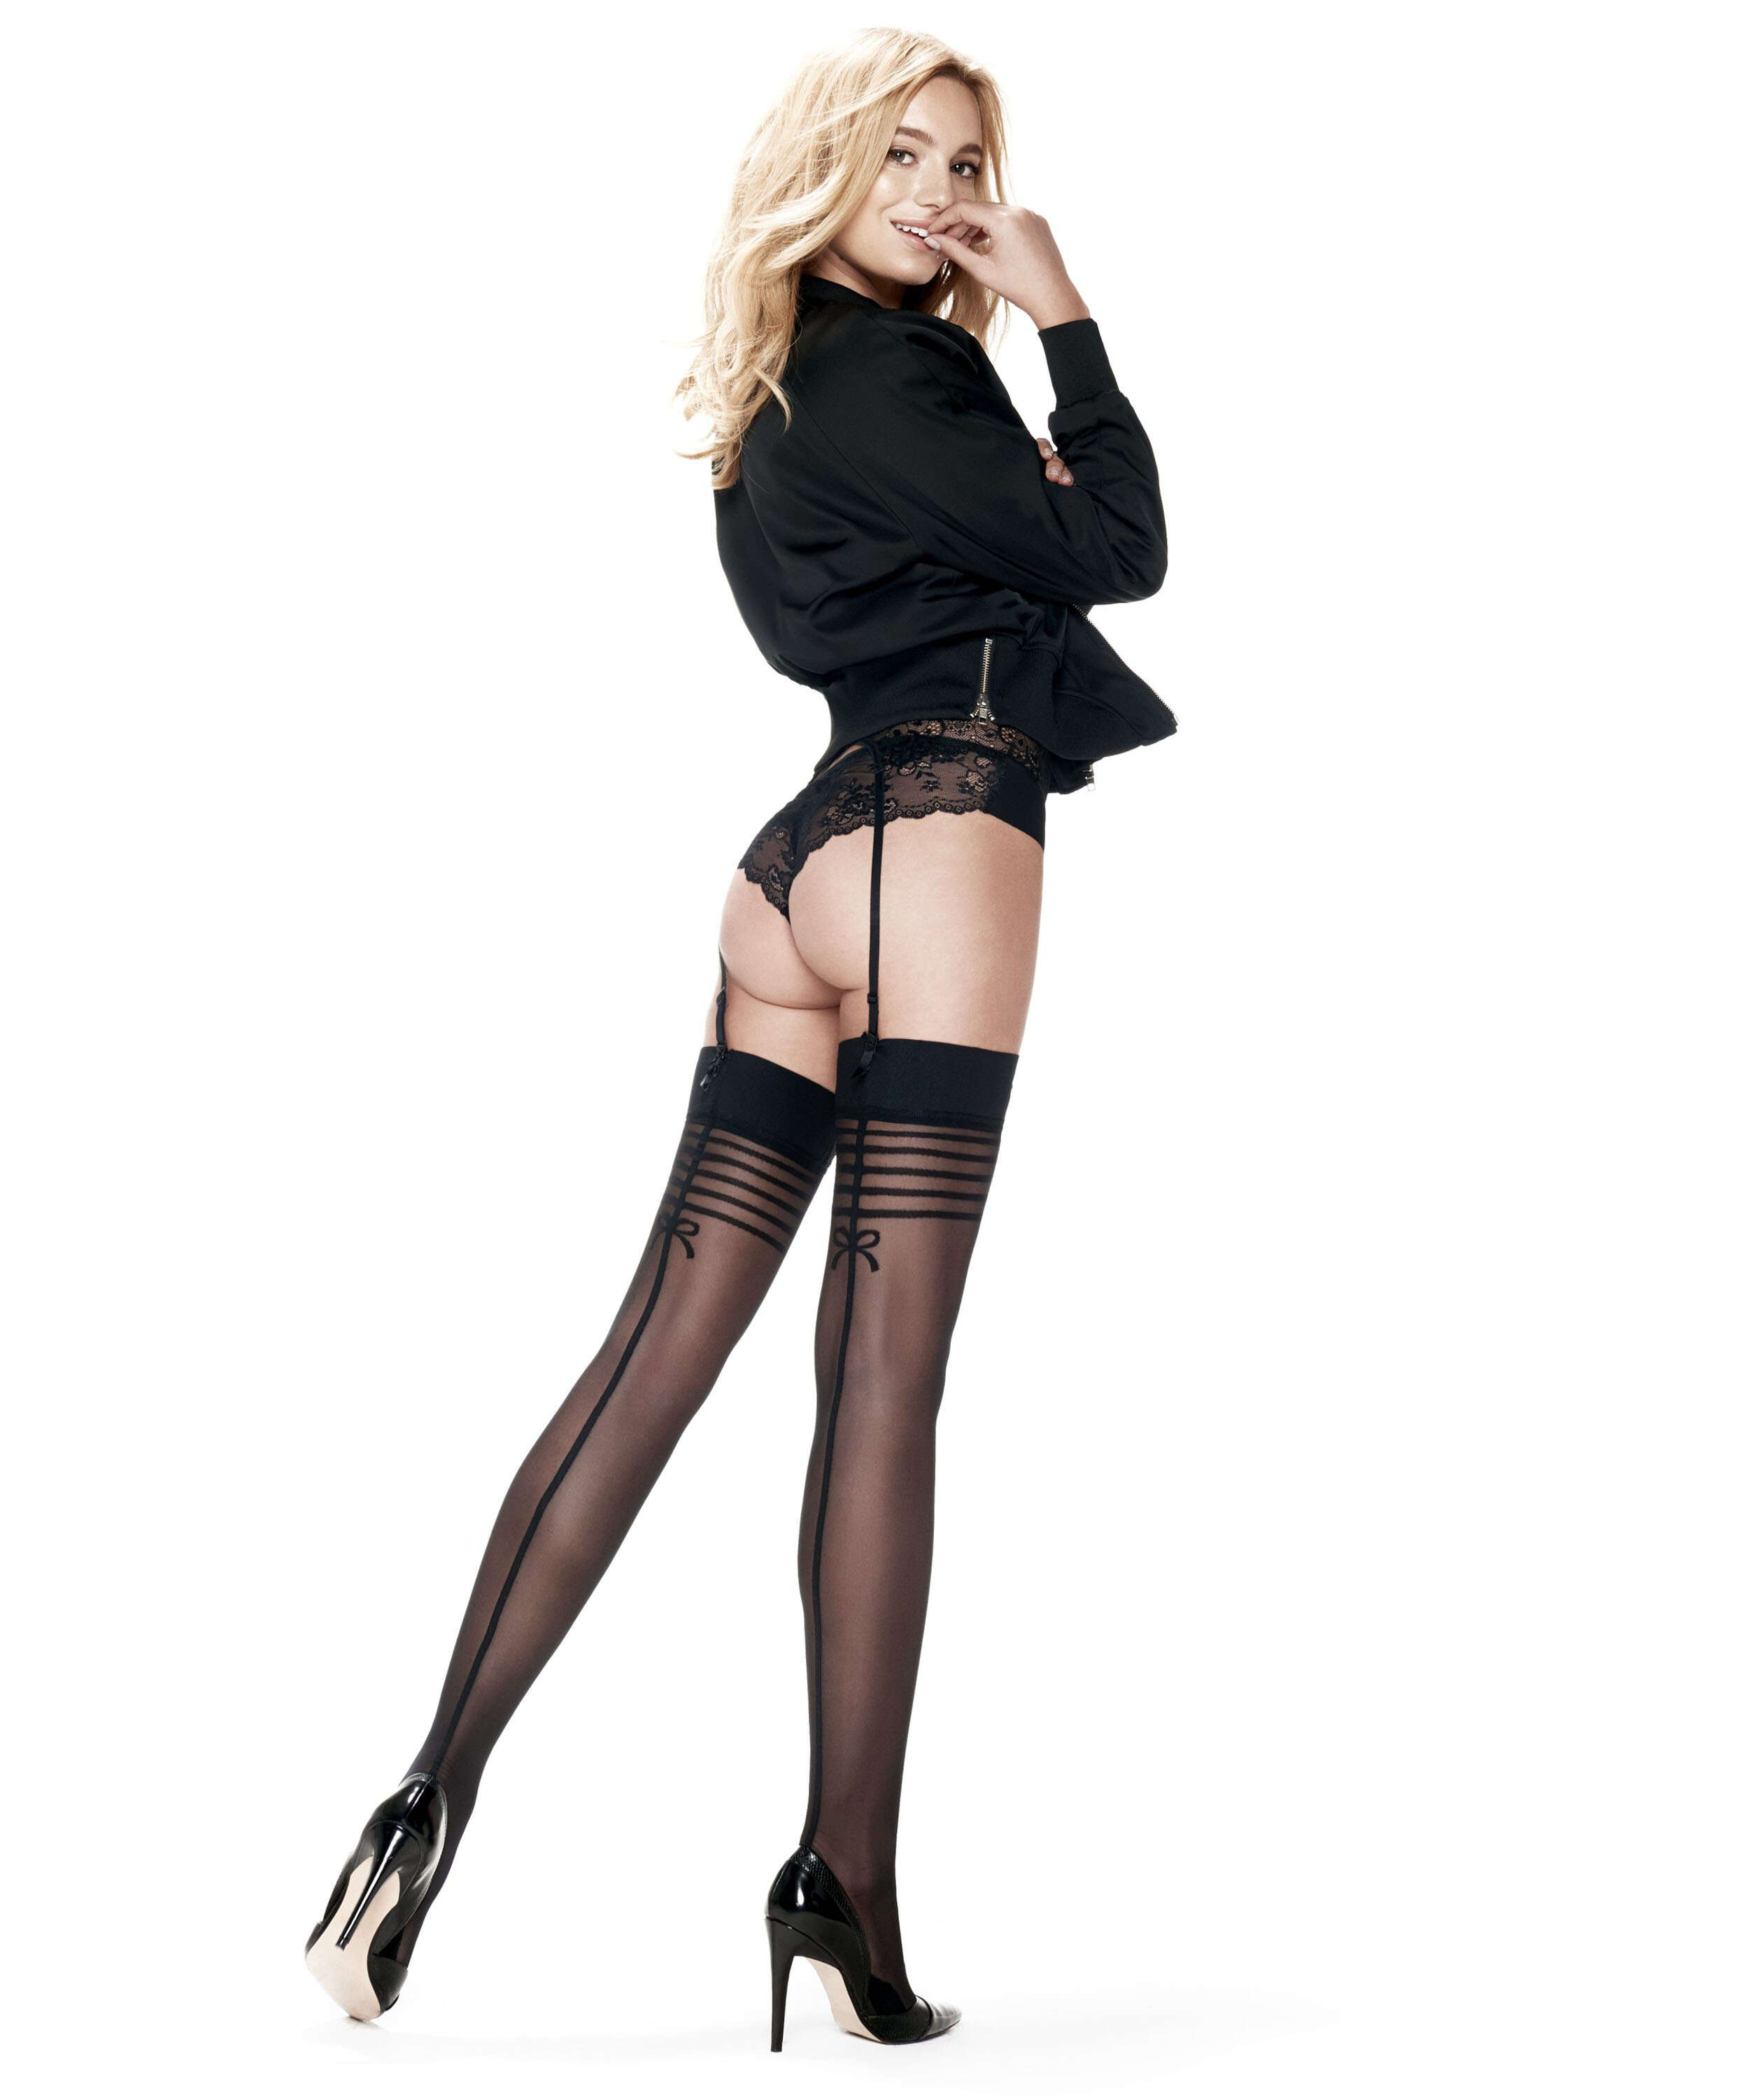 Stockings 30 Denier Delicate Lines, Schwarz, main